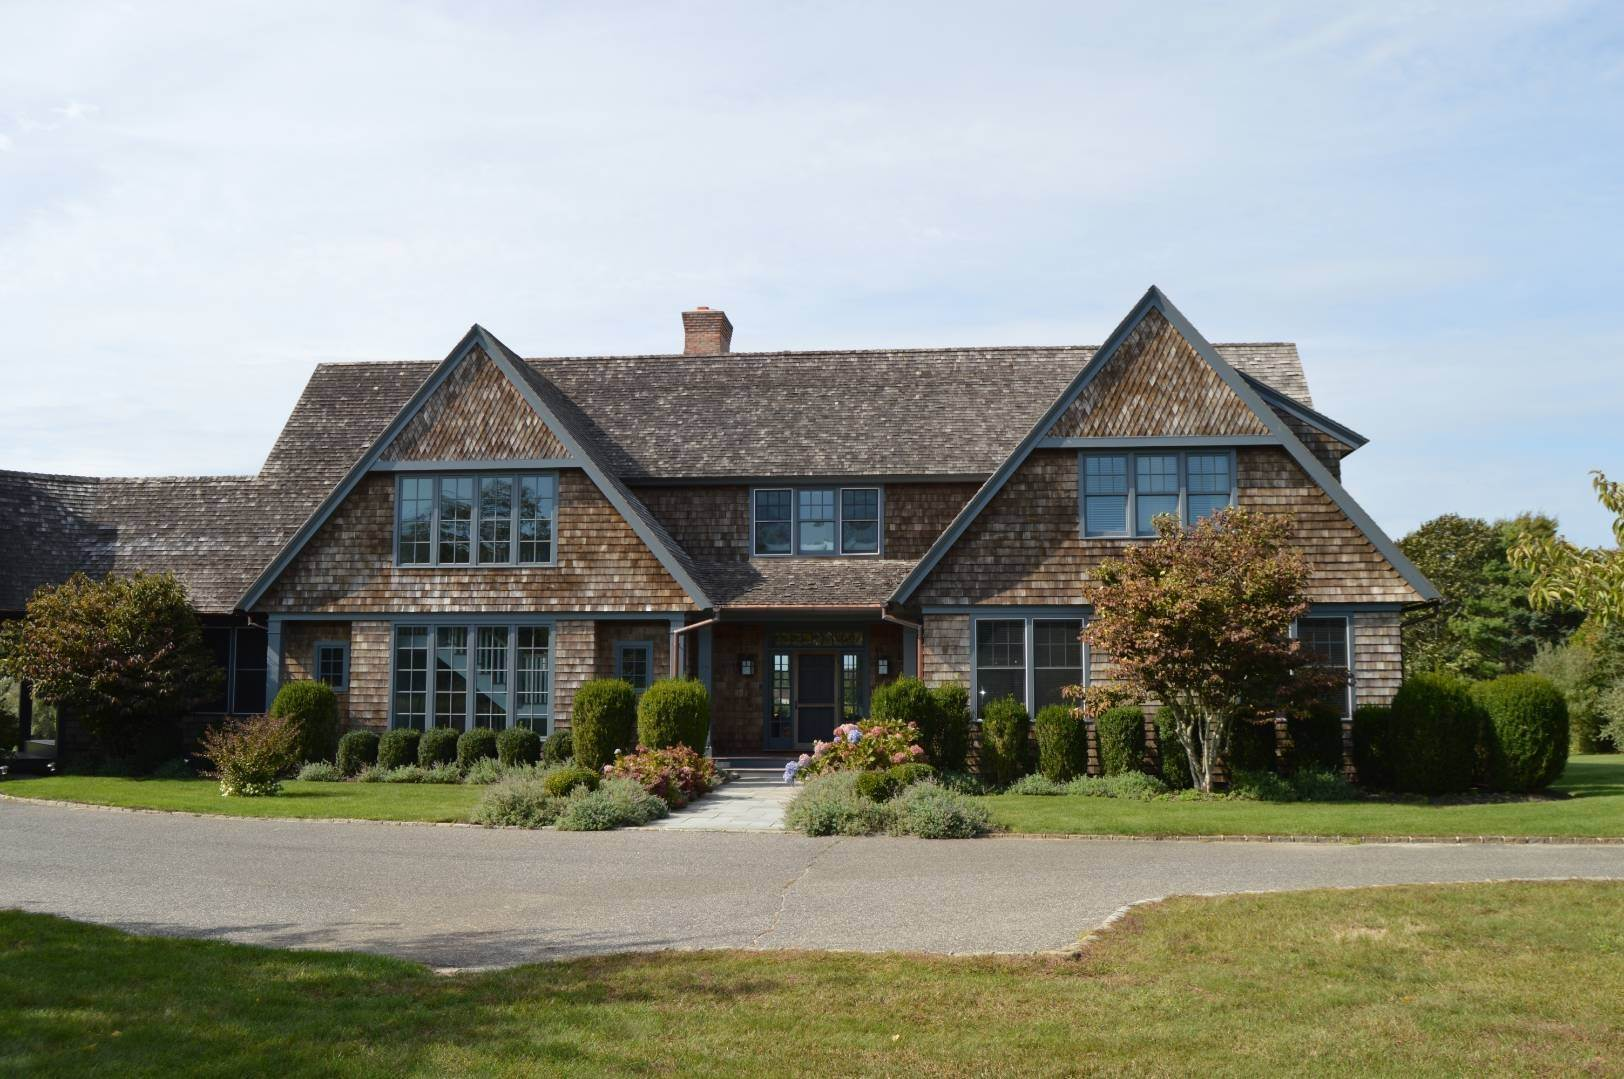 Single Family Home at Sagaponack Estate Pool And Tennis Sagaponack Village, NY 11962